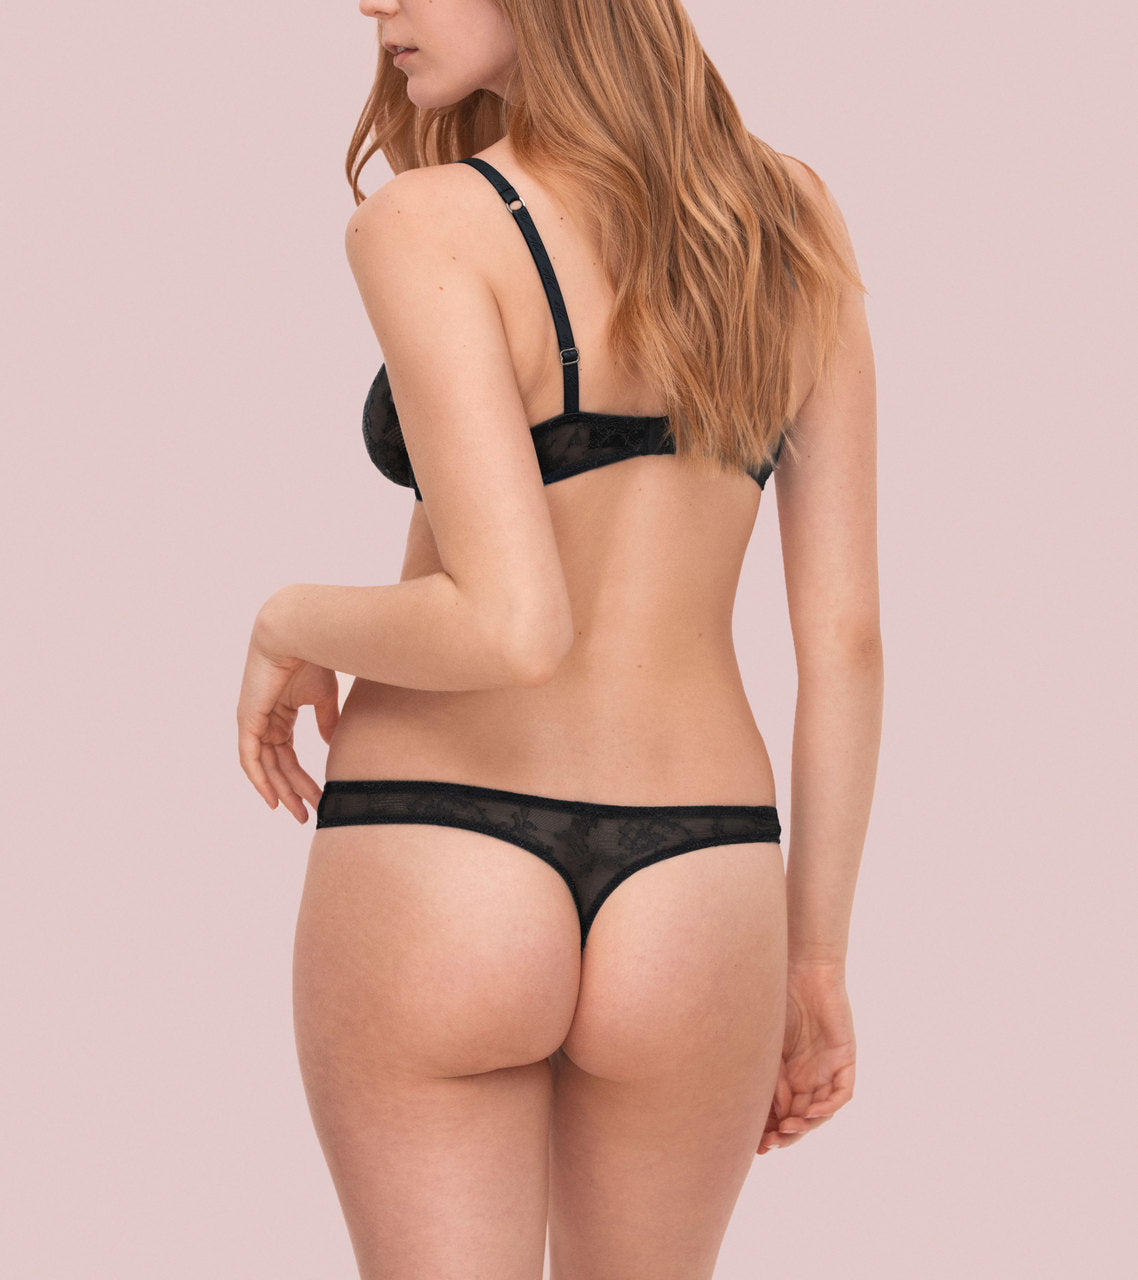 Bold Lace Thong - Peach